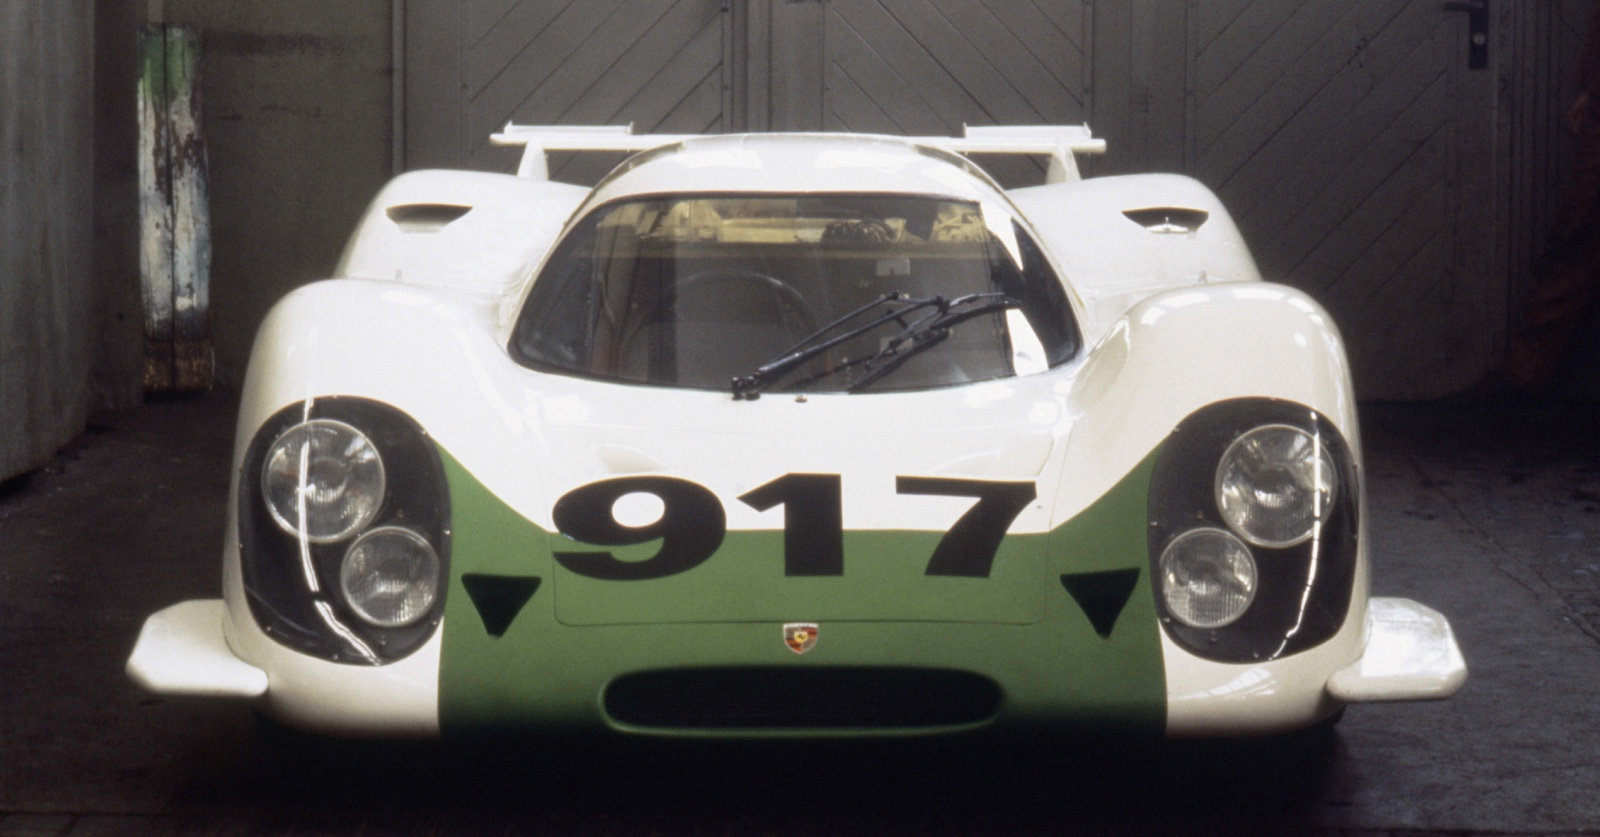 hm8-can-am-porsche-917-turbo-panzer